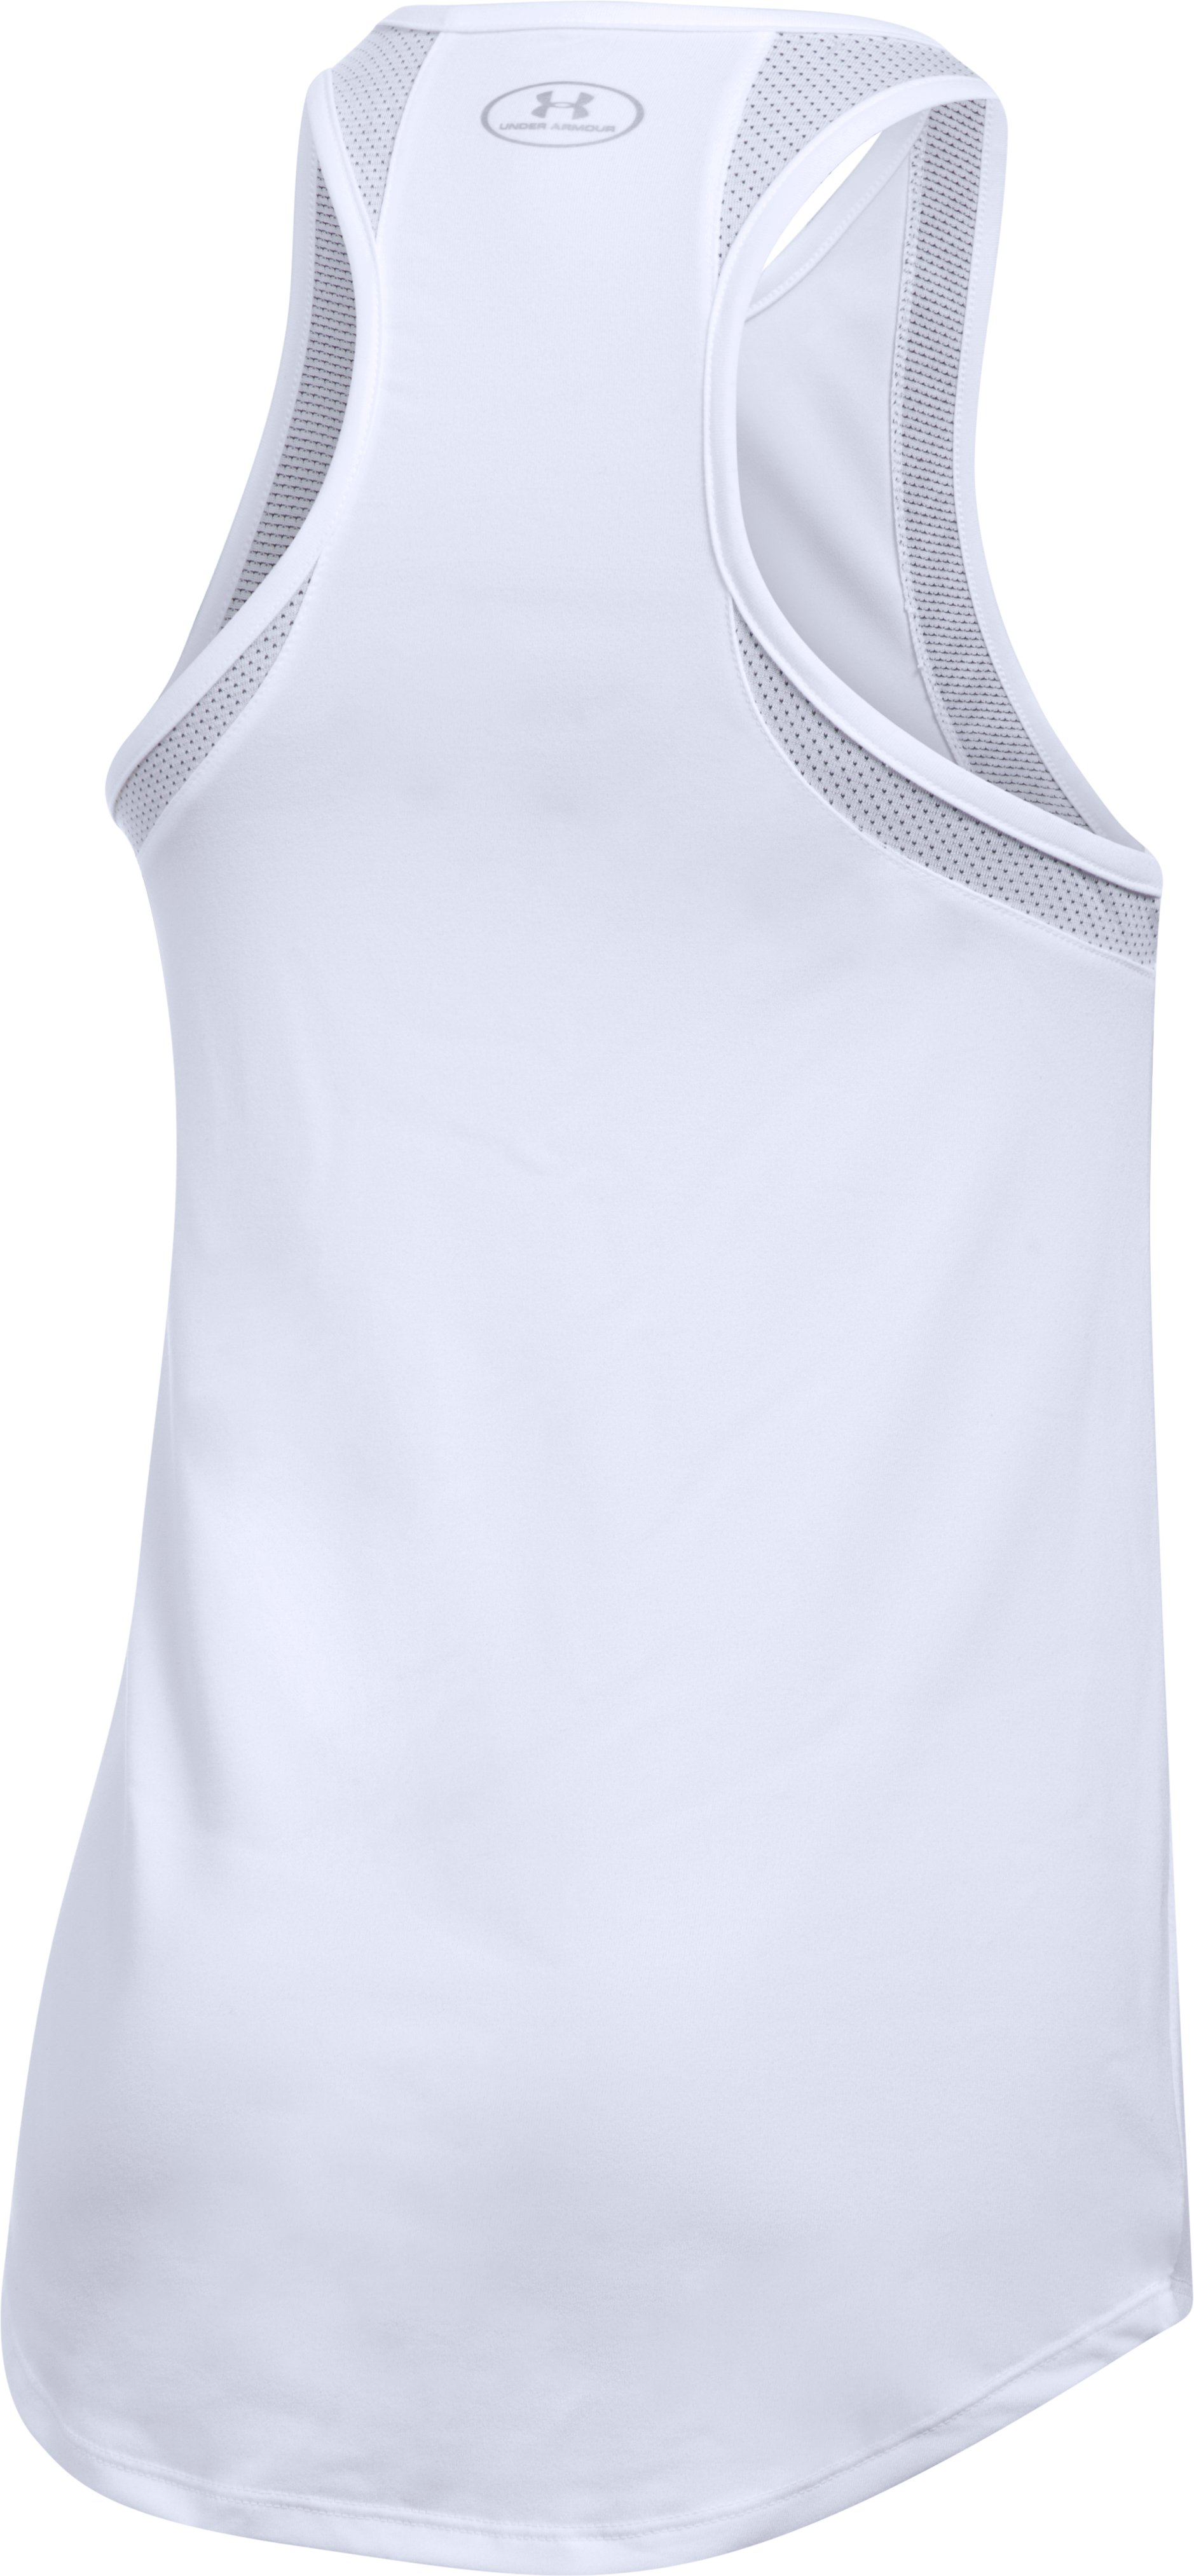 Women's Los Angeles Dodgers UA Tech™ Mesh Tank, White, undefined